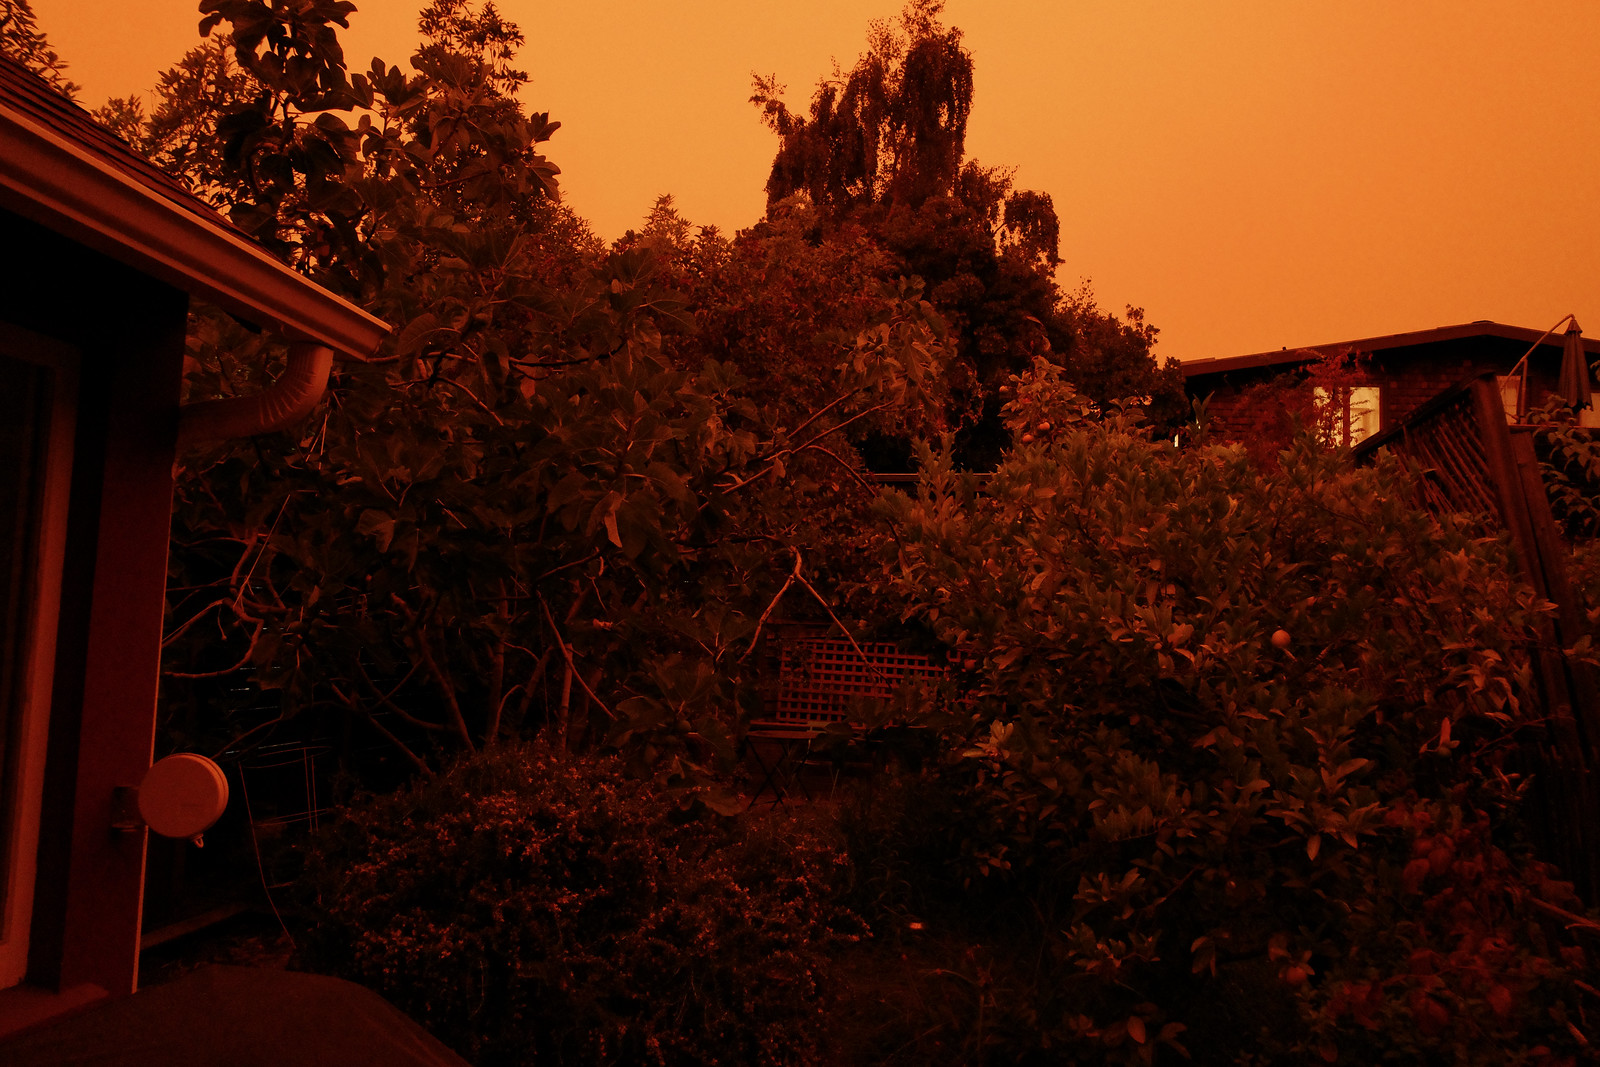 apocalyptic orange skies